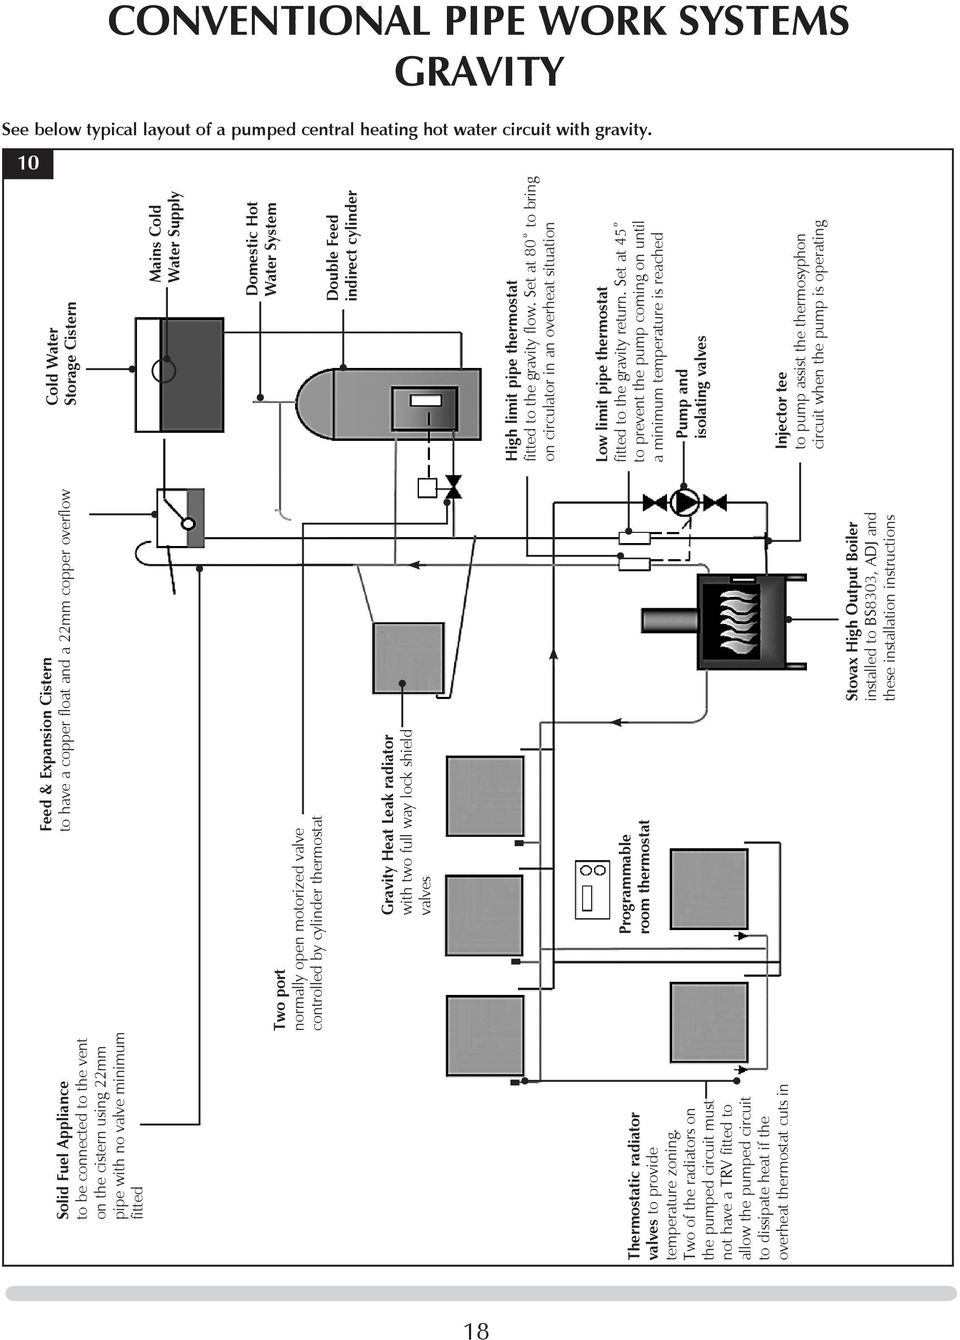 High Output Boiler Systems Pdf Swimming Pool Pump Diagram Hot Water Plumbing Two Of The Radiators On Pumped Circuit Must Not Have A Trv Fitted To Allow